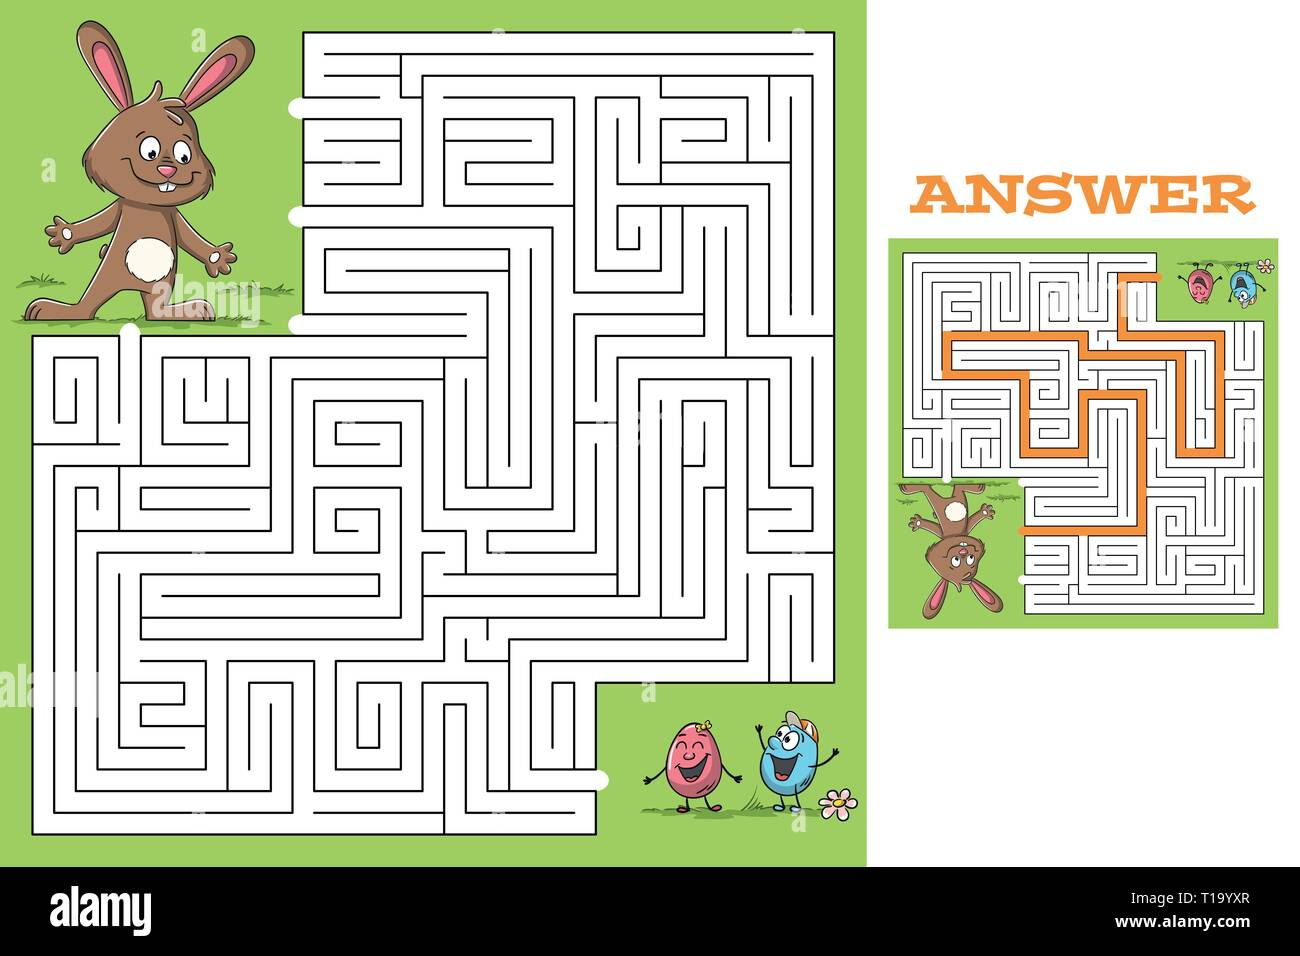 Cartoon easter game puzzle with solution. Vector illustration with separate layers. Stock Vector